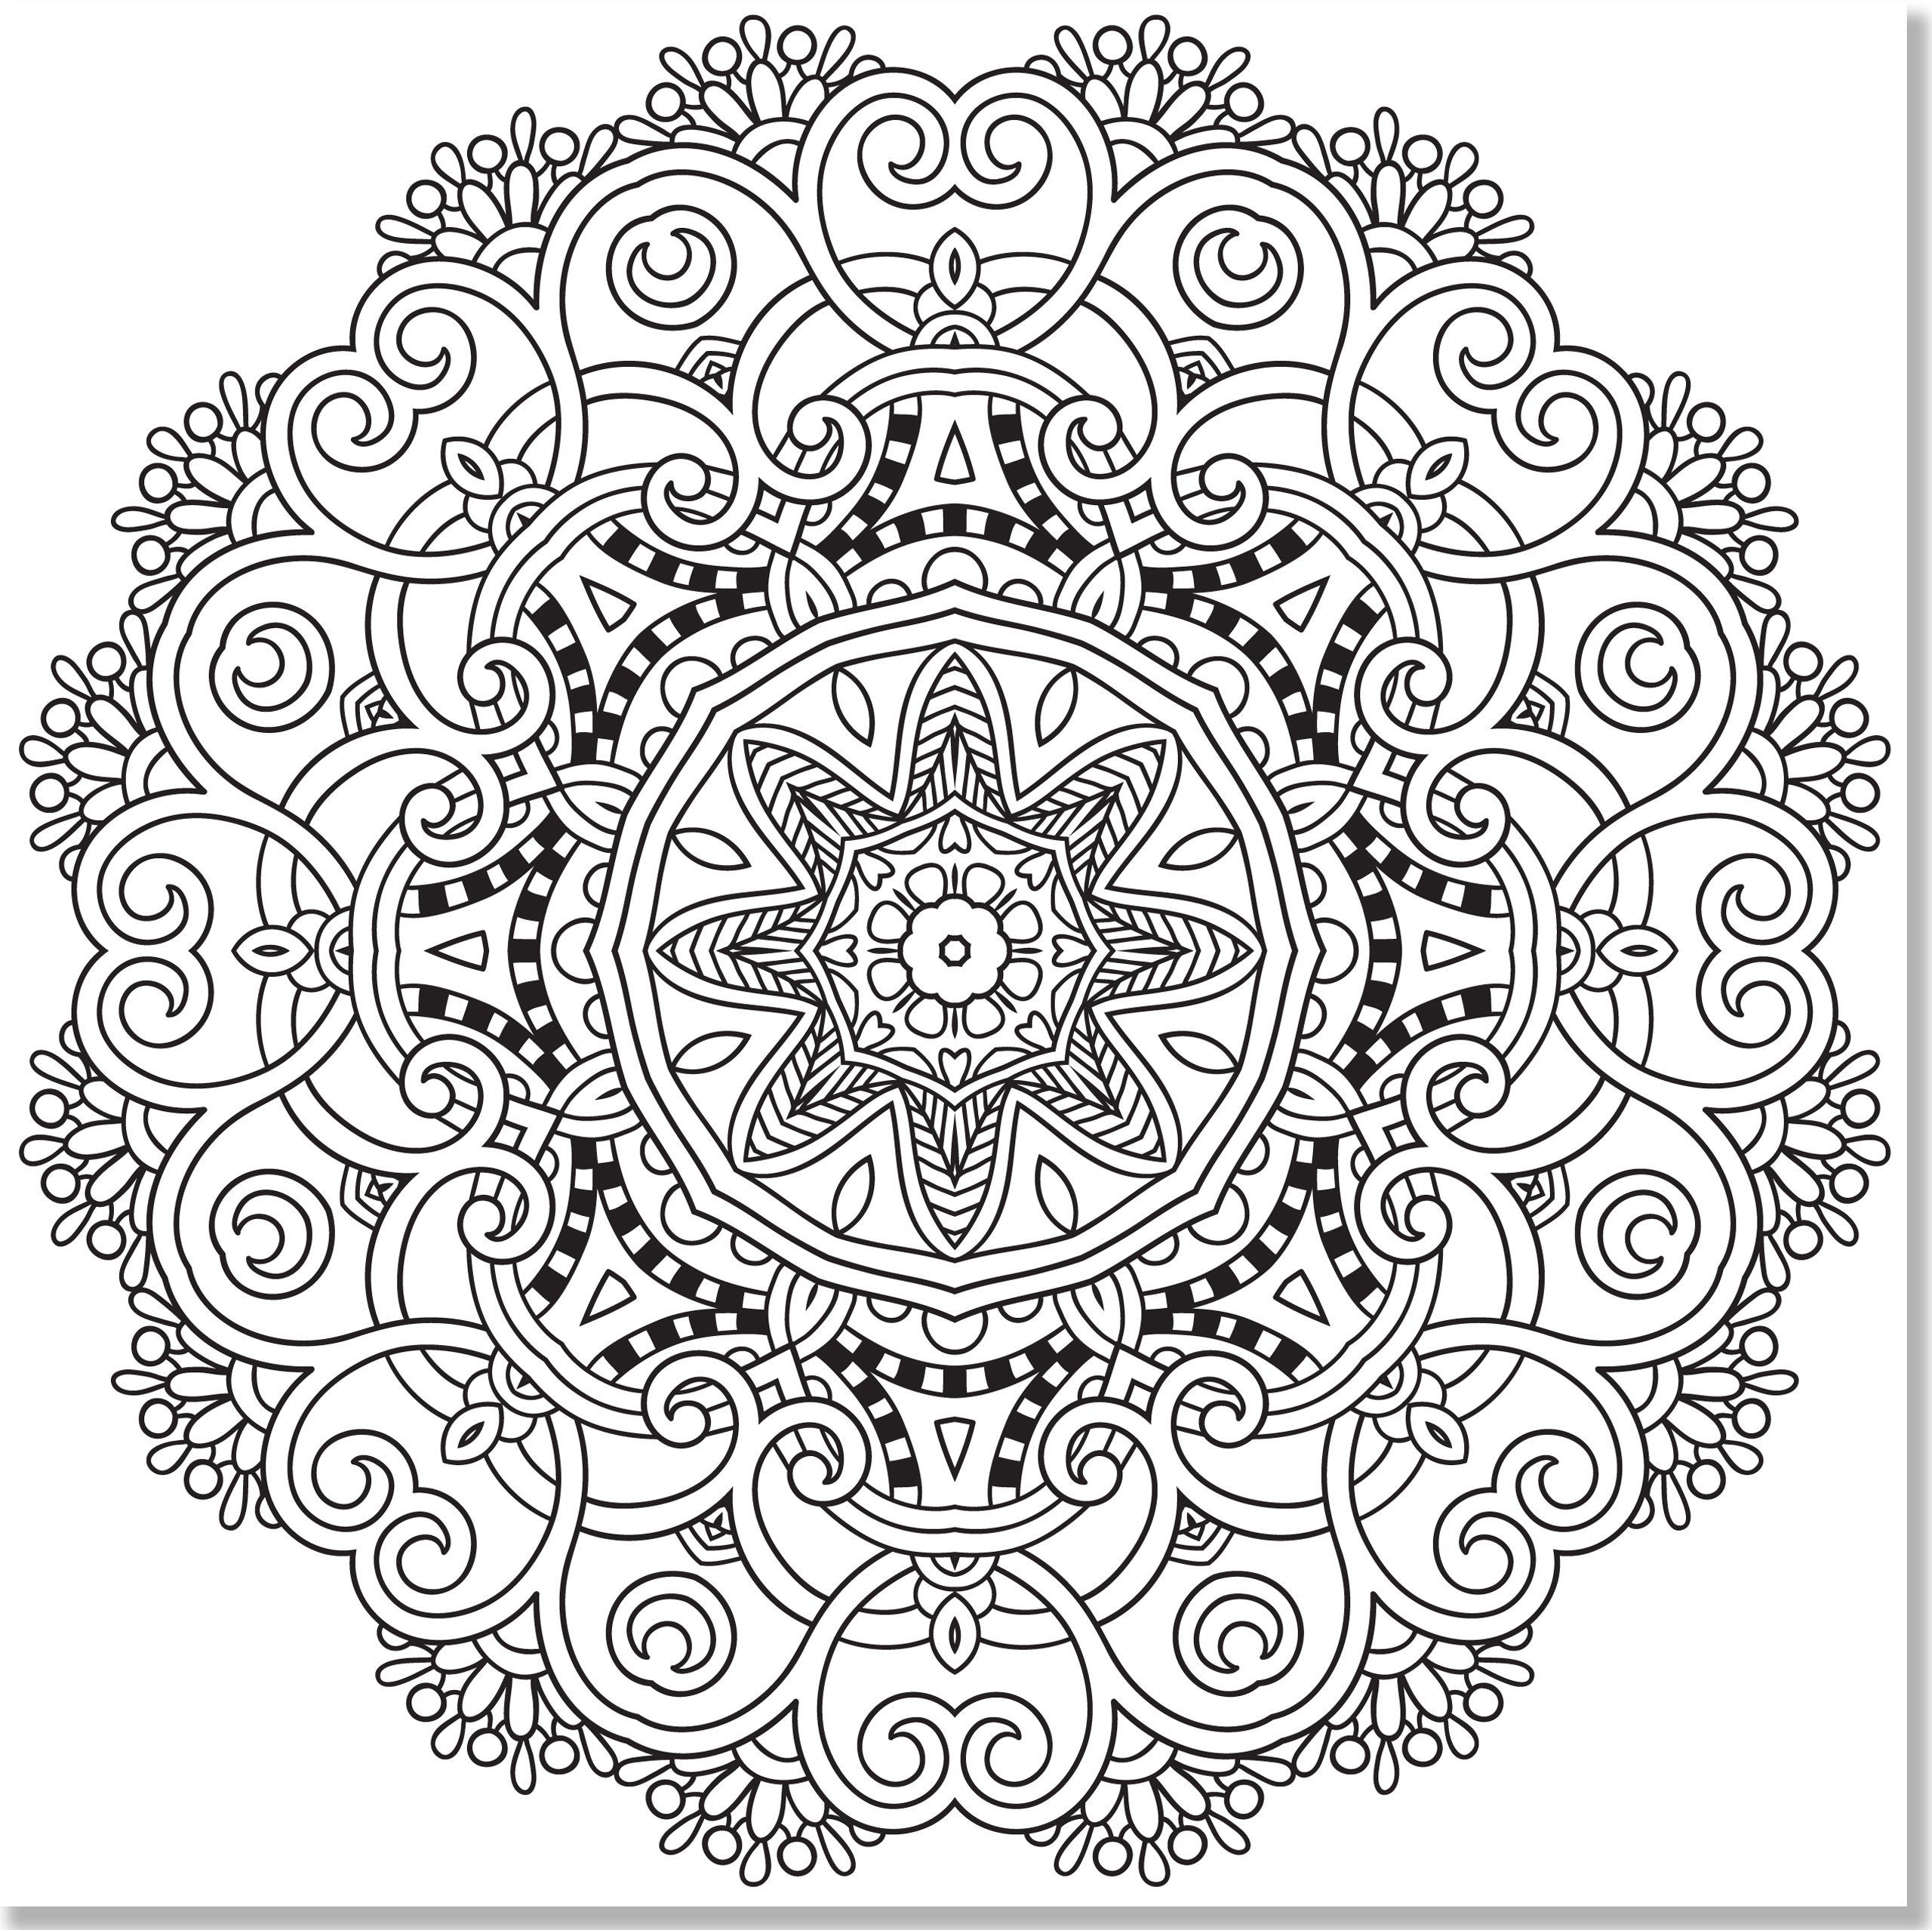 Stress relief coloring pages mandala - Amazon Com Mandala Designs Adult Coloring Book 31 Stress Relieving Designs